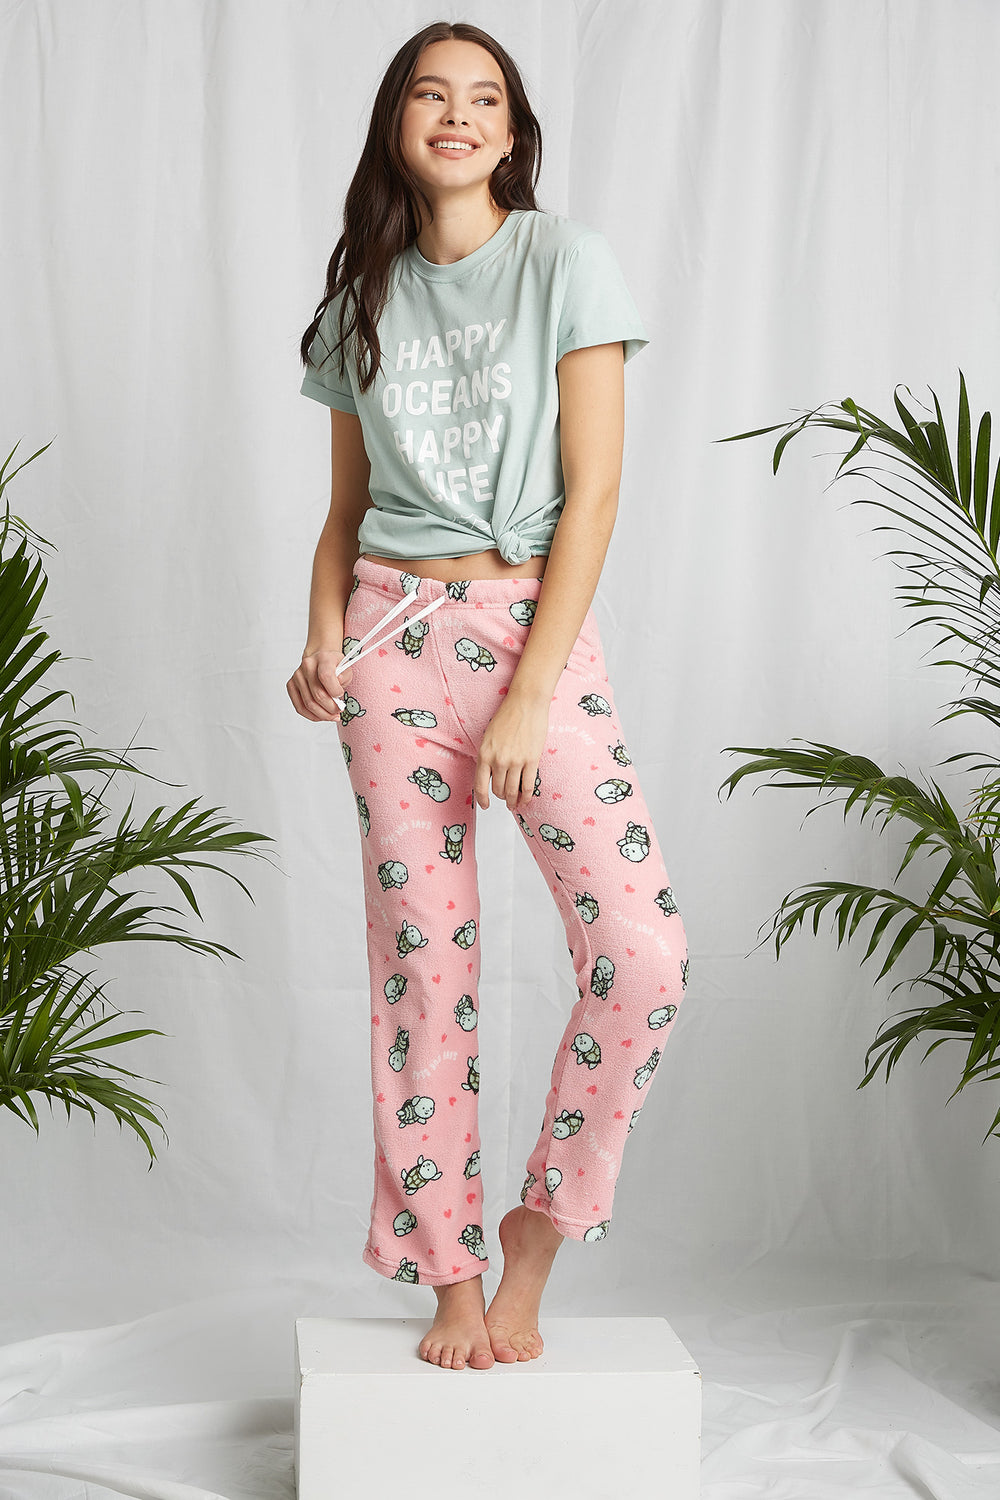 REPREVE® Eco-Friendly Recycled Polyester Graphic Pajama Pant Light Pink